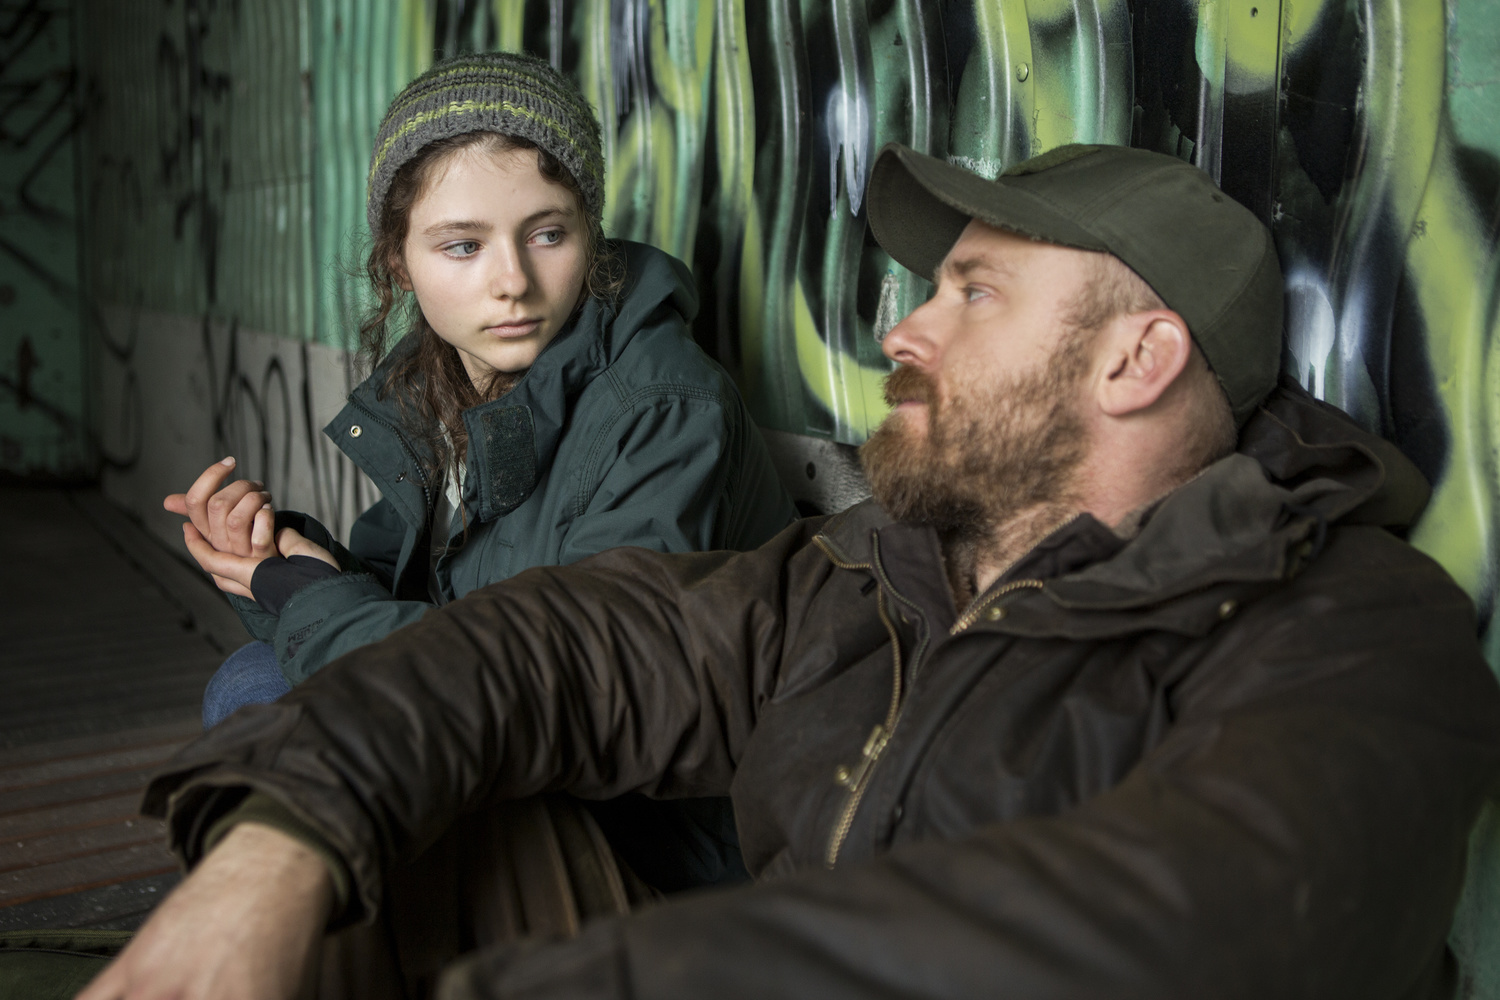 Leave No Trace. 2018. USA. Directed by Debra Granik. Courtesy of Bleecker Street